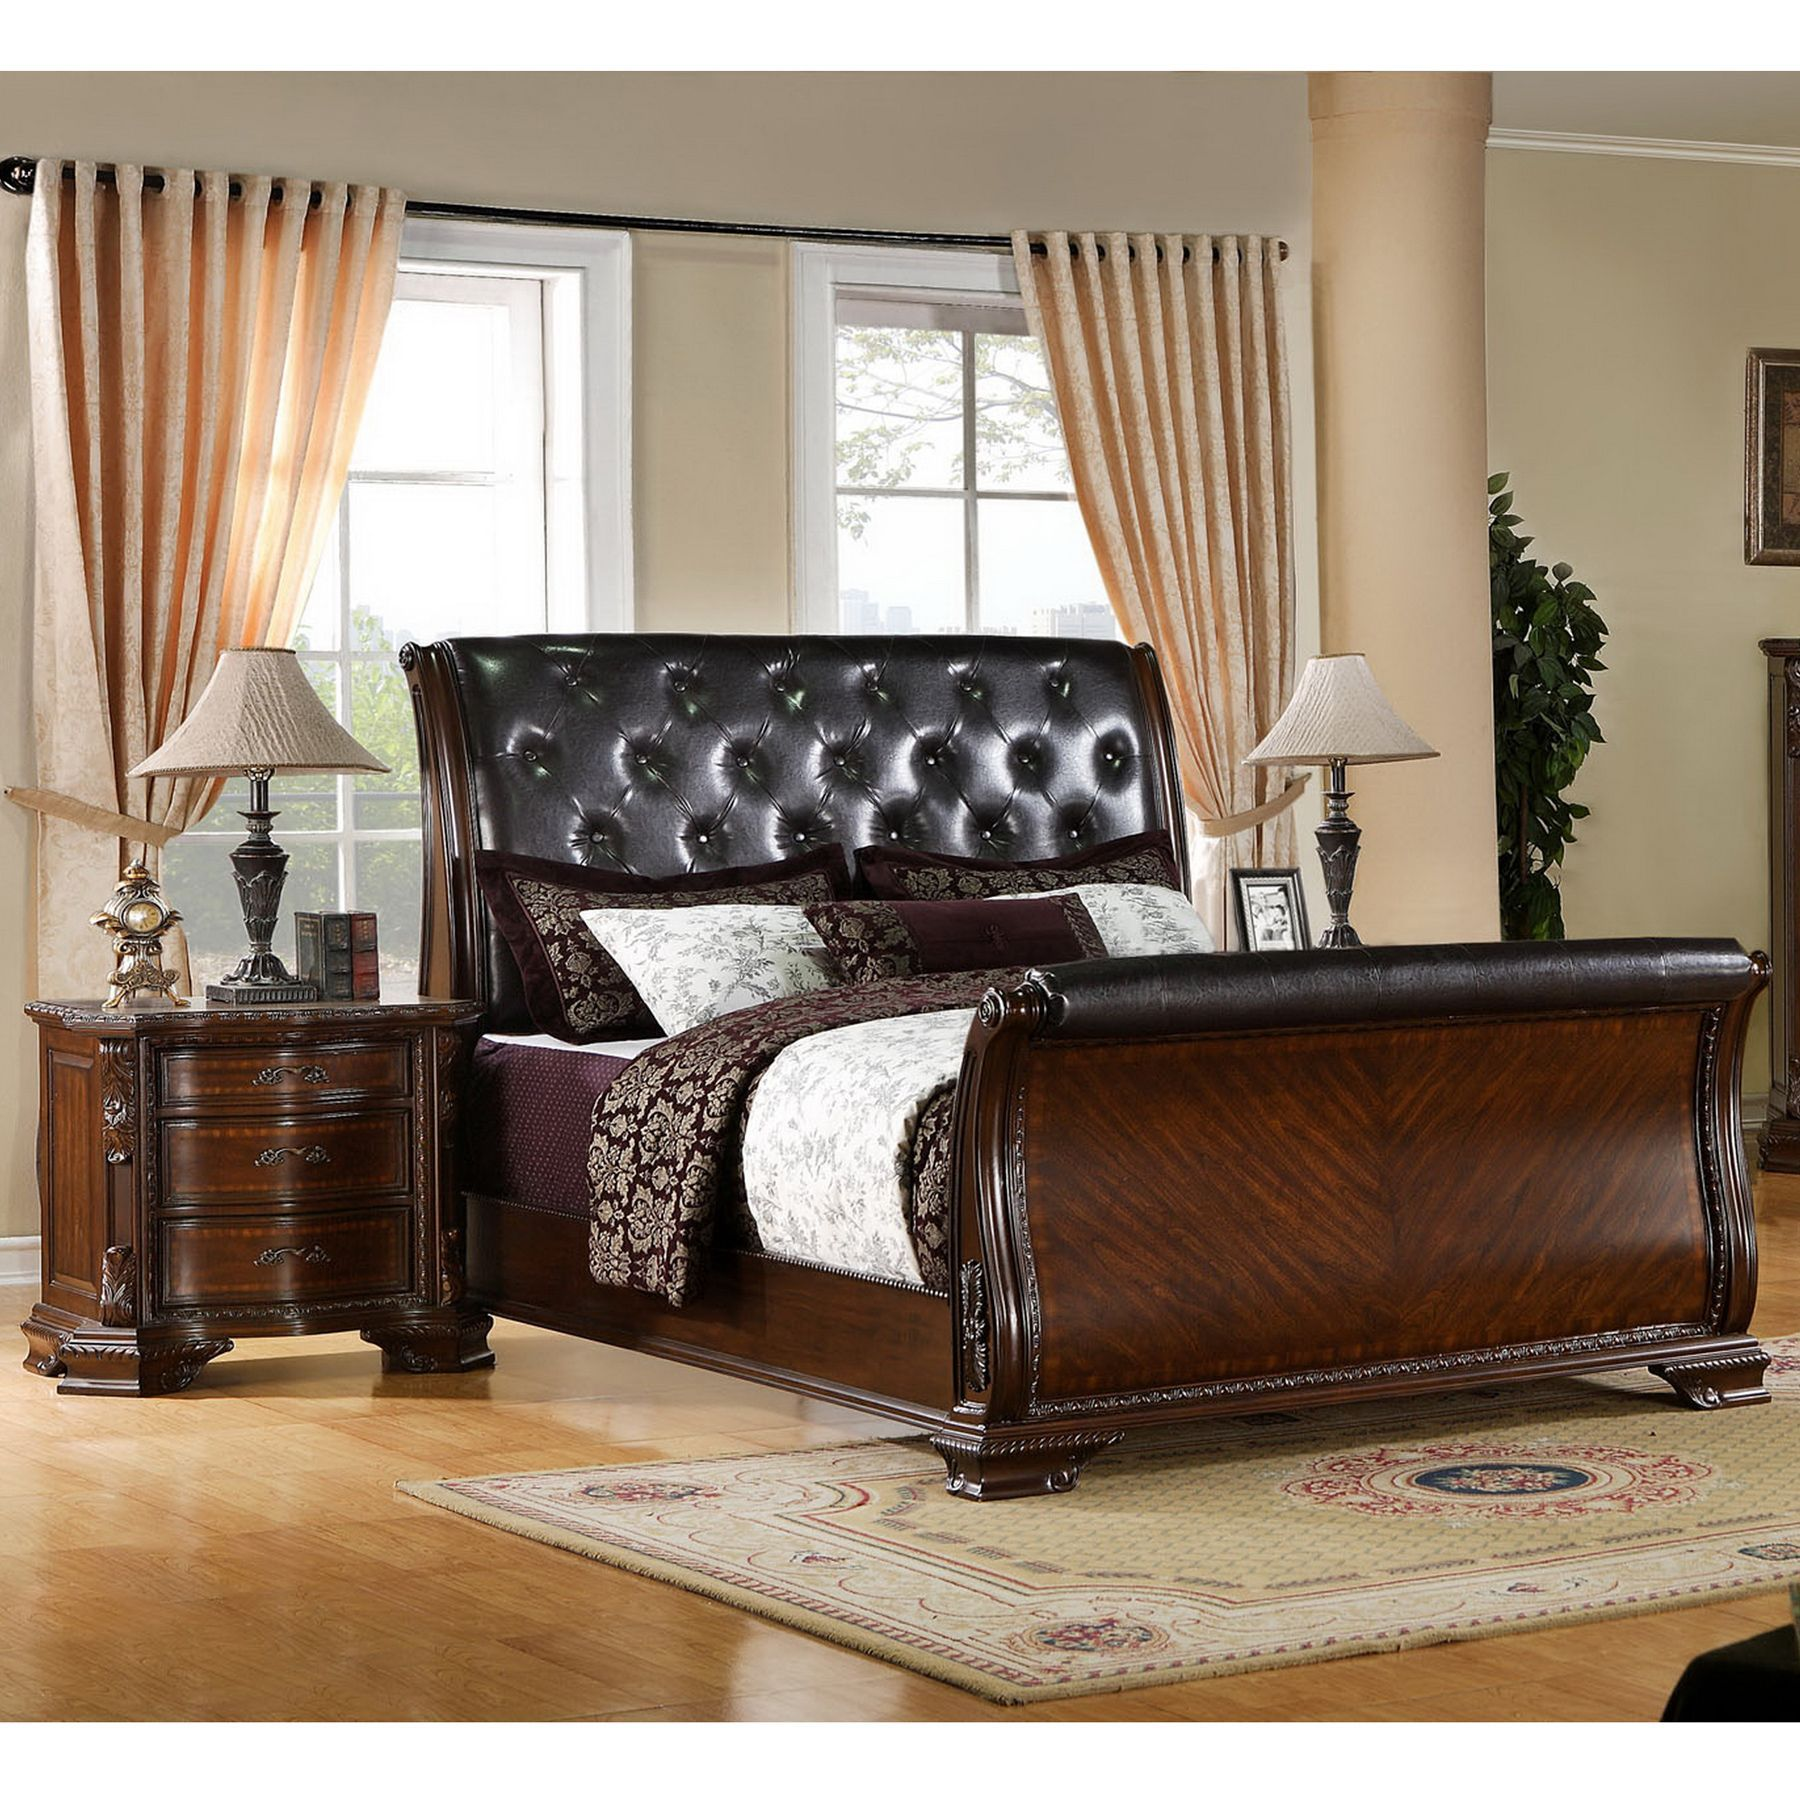 Furniture of America Luxury Brown Cherry Leatherette Baroque Style